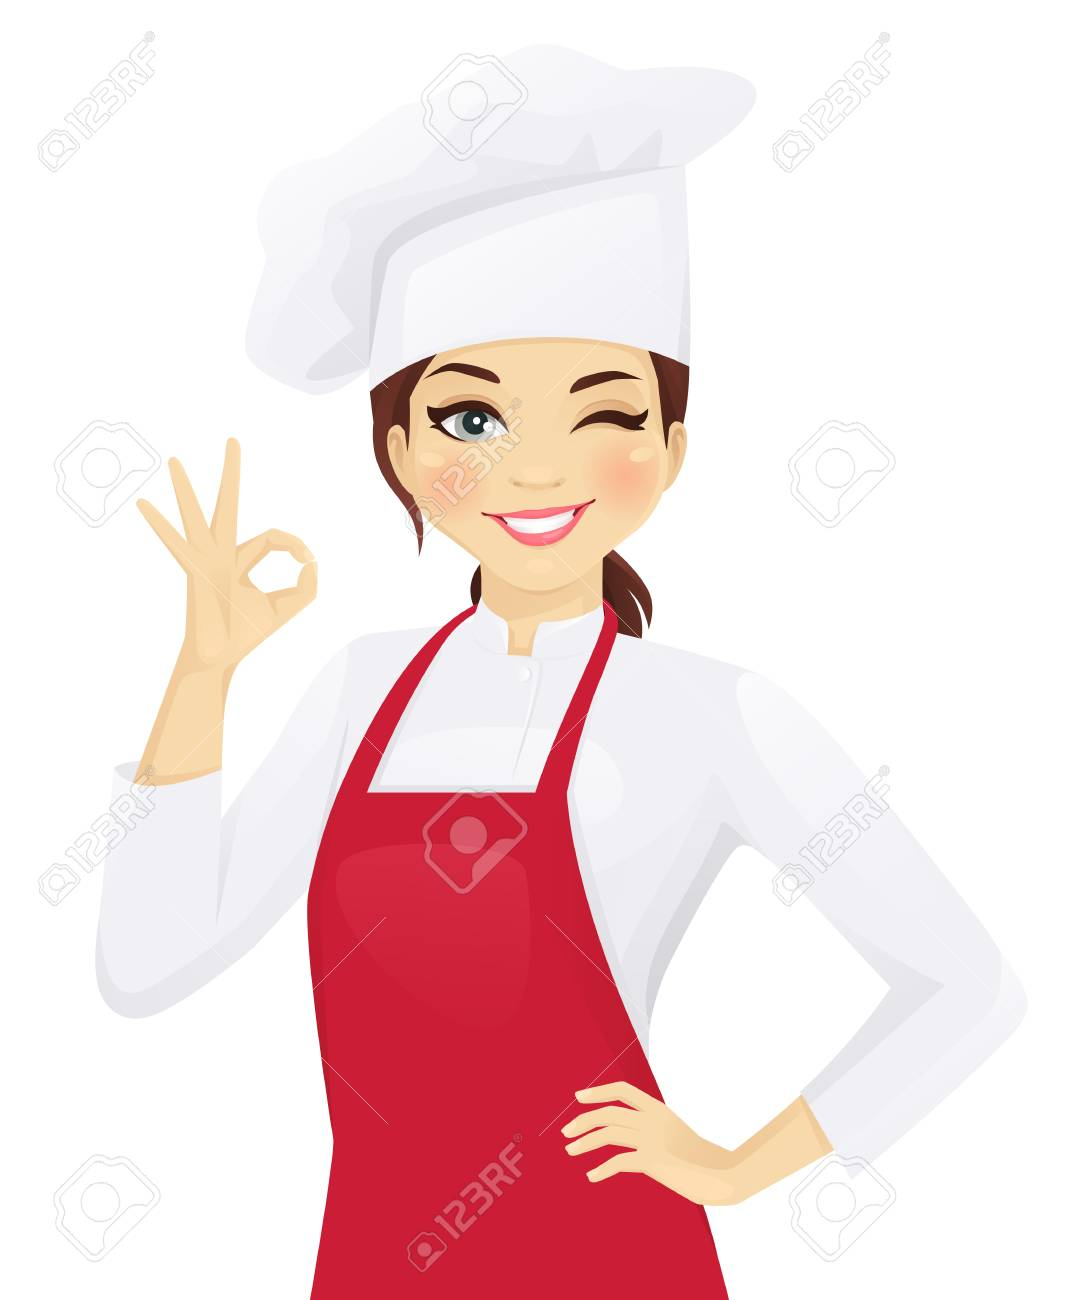 Confident chef woman gesturing ok sign vector illustration - 100959102